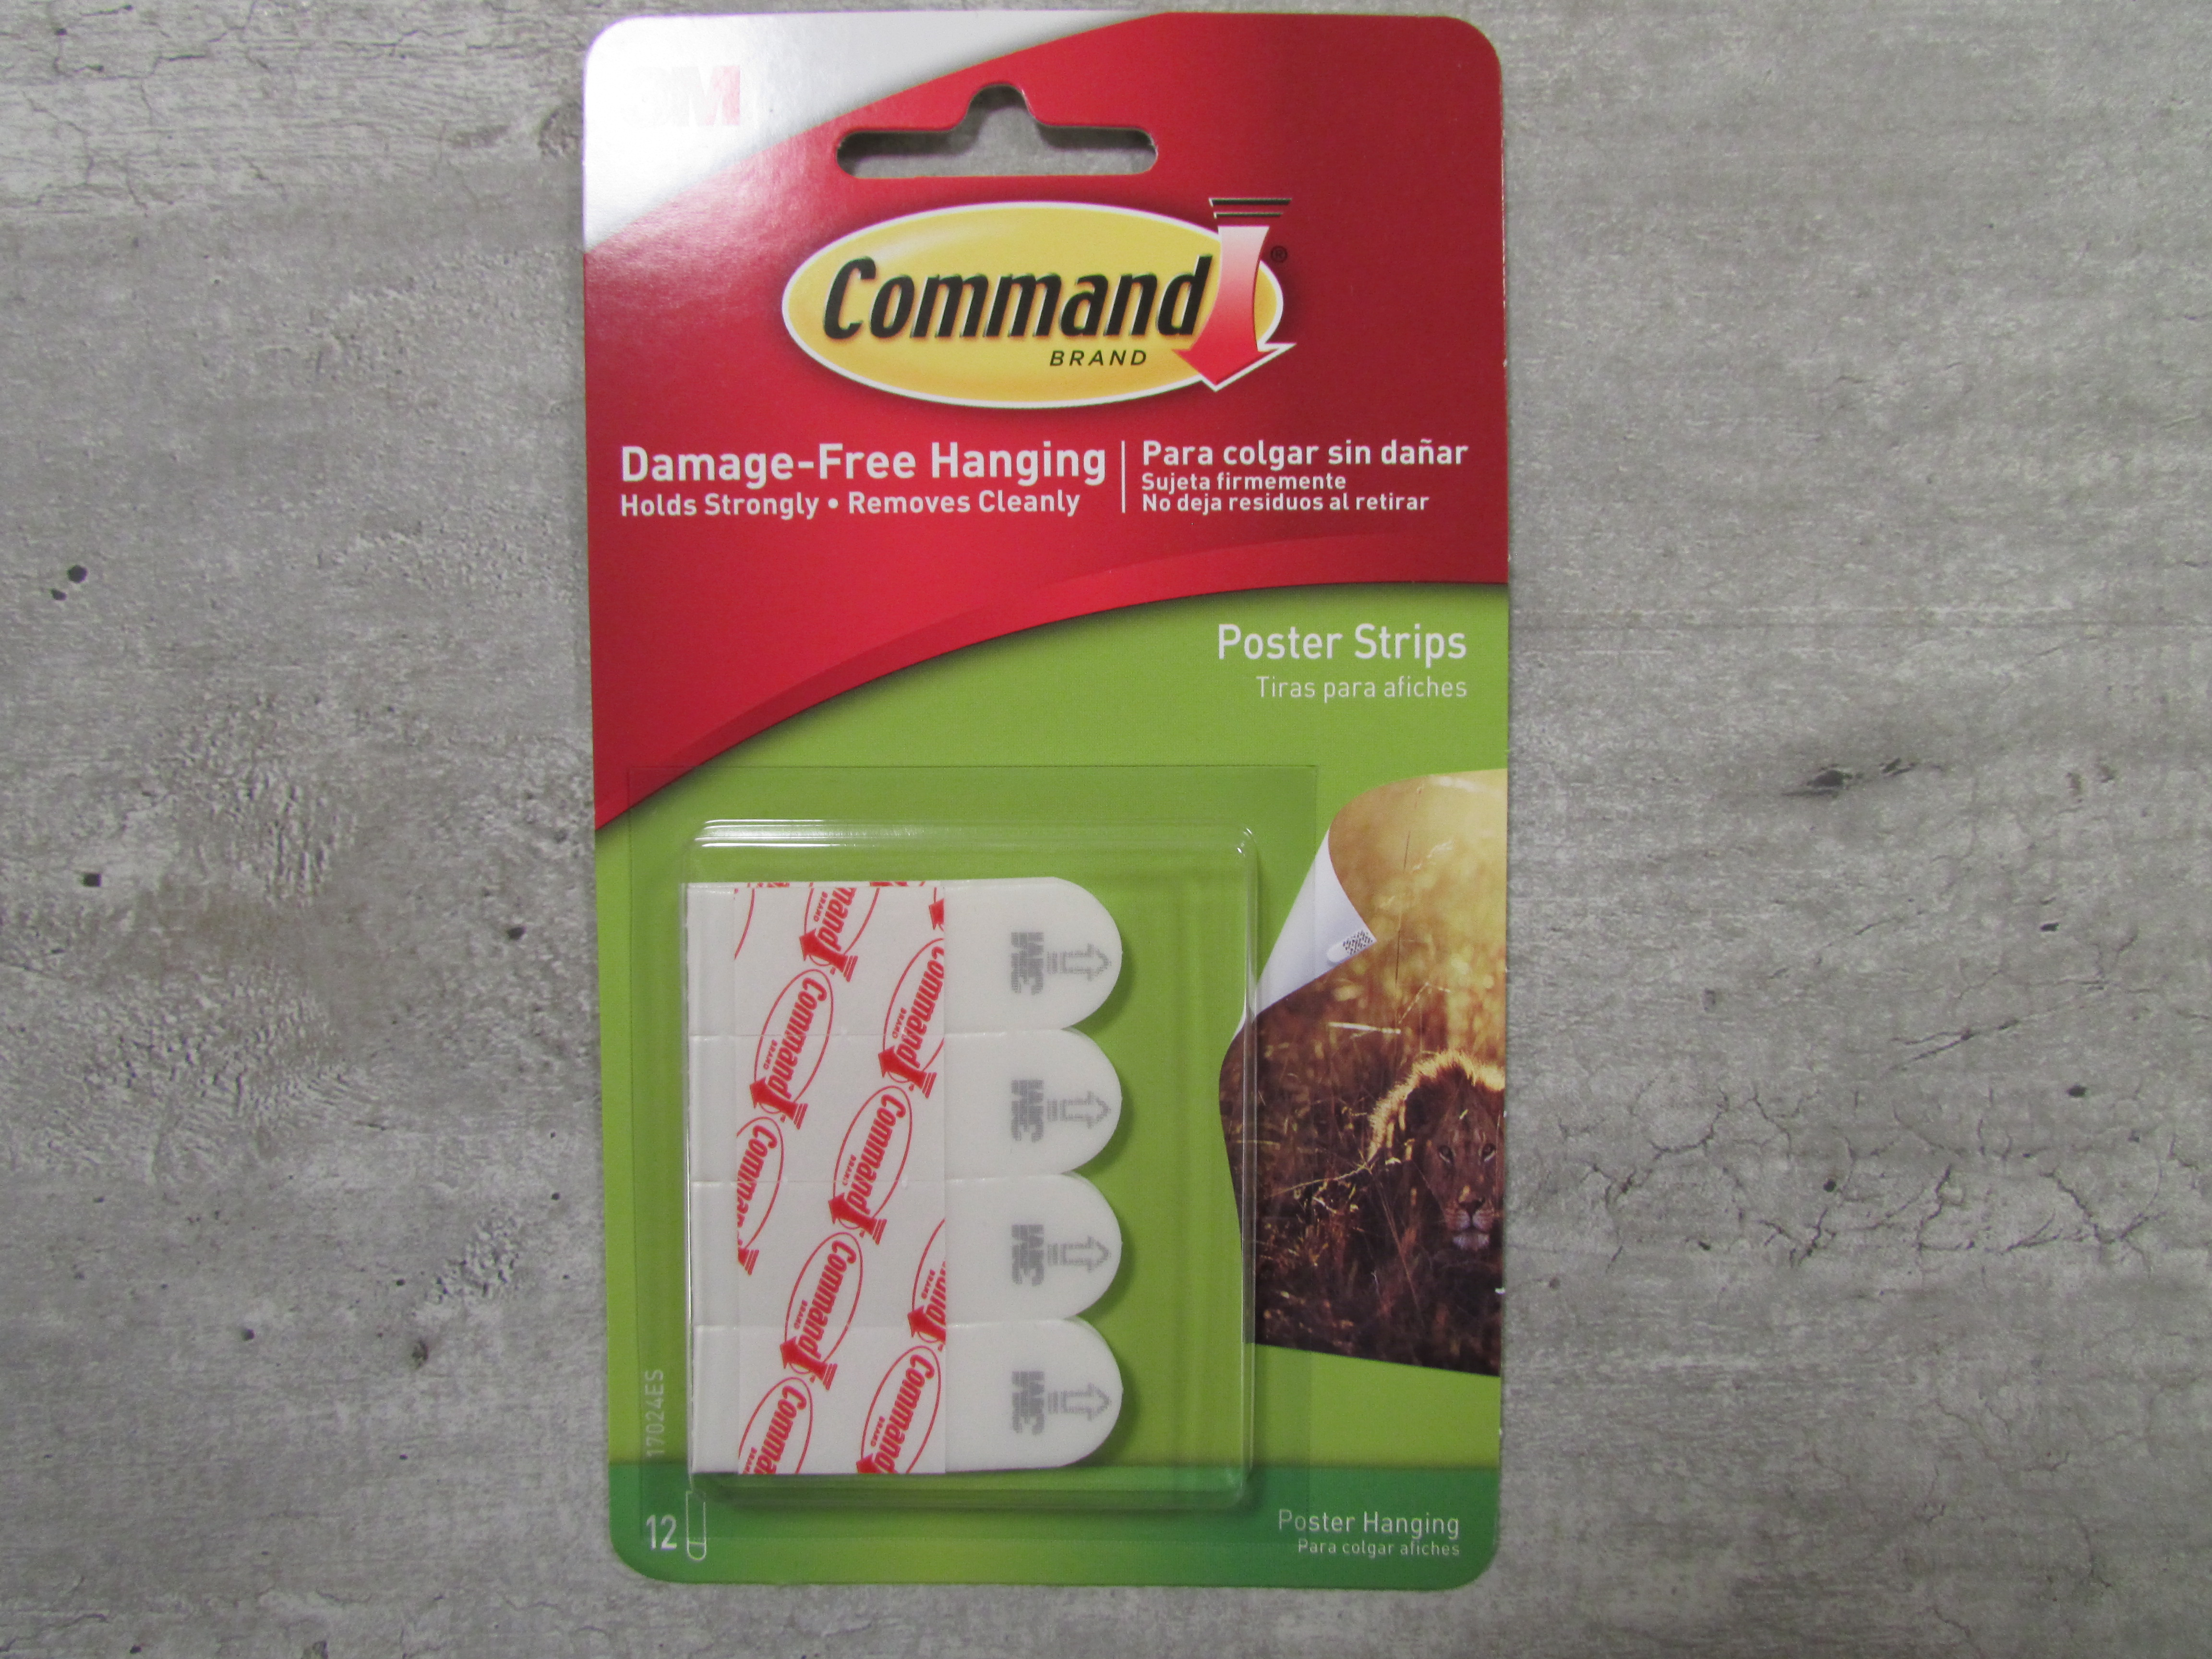 Image for the Poster Strips, Command Adhesive product